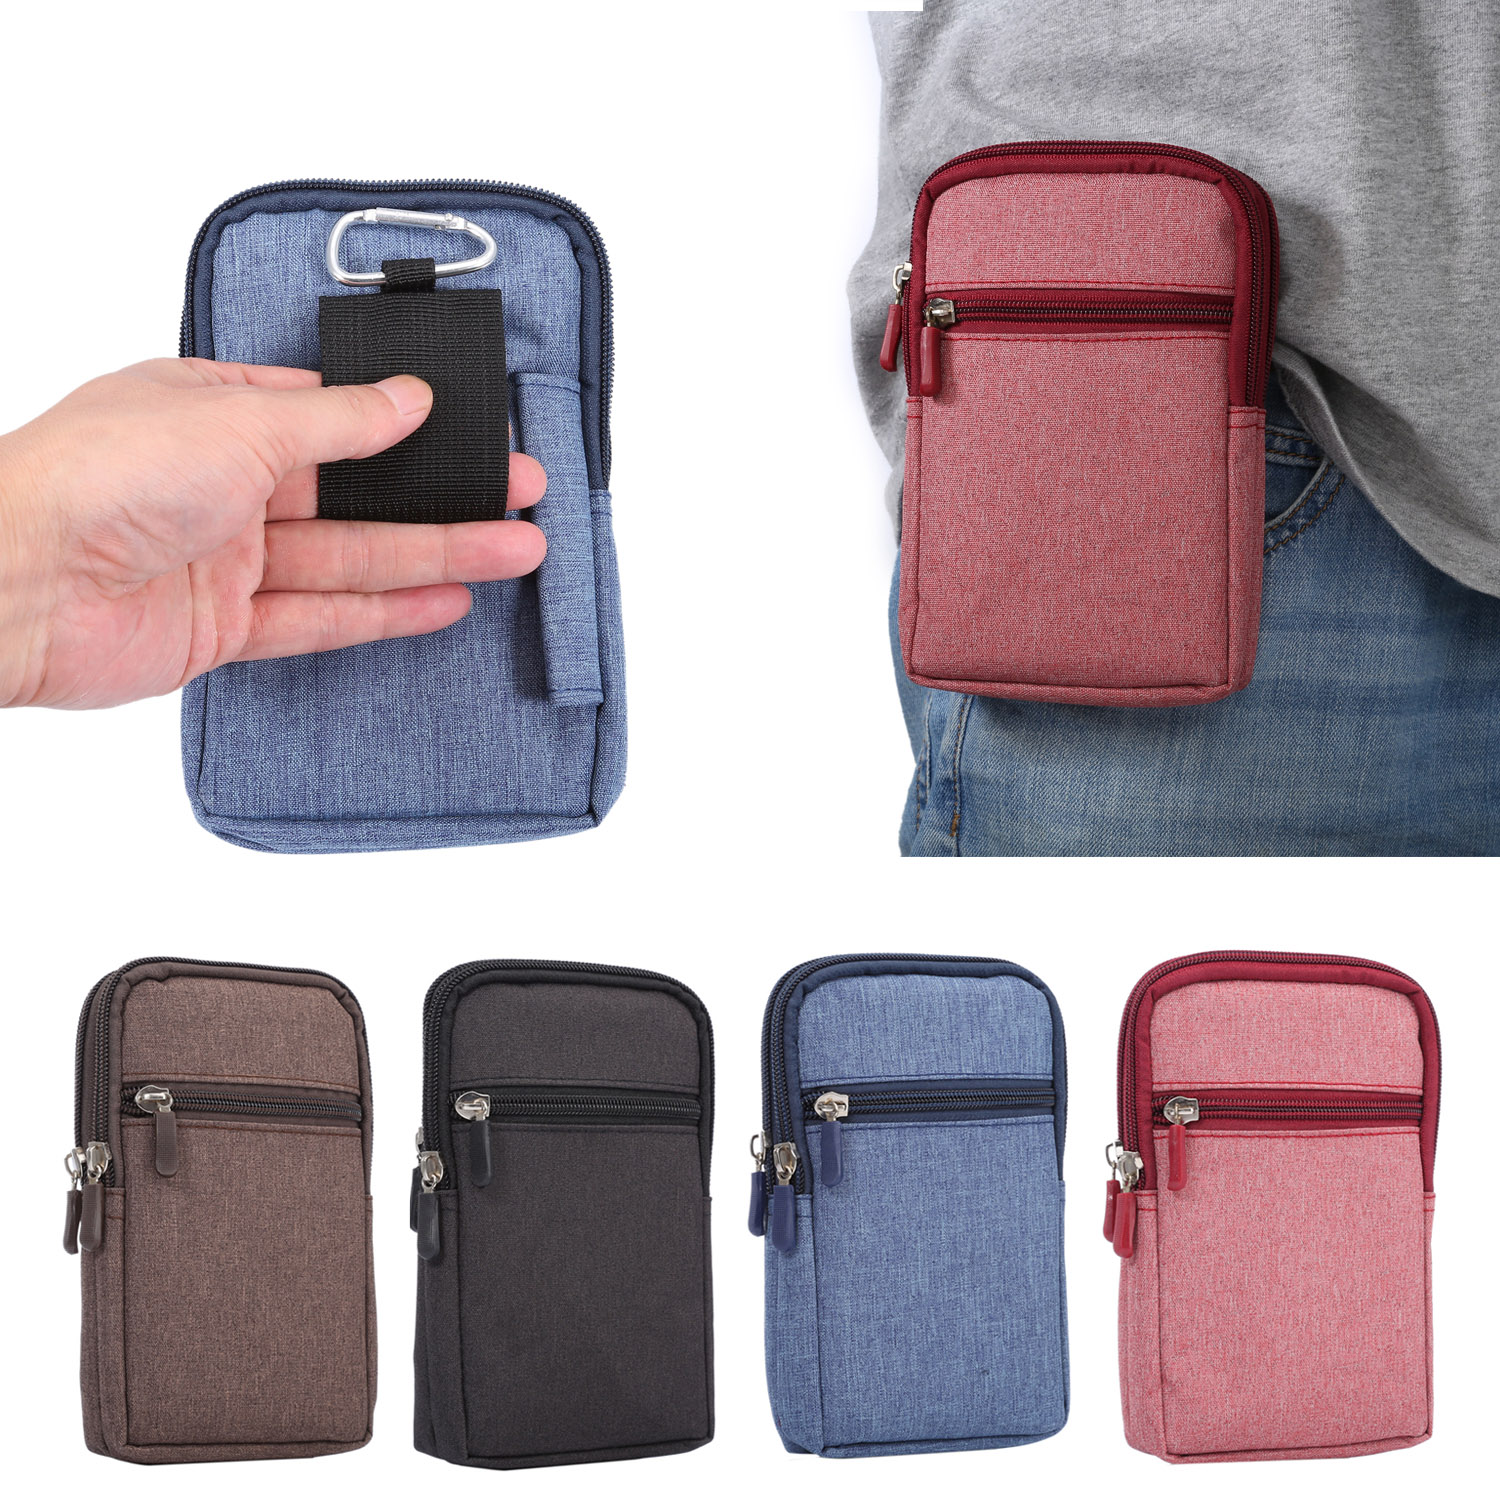 Outdoor 2 Pockets Universal Holster Phone Pouch Bag Wallet Case Belt Clip for Samsung Galaxy S3 S4 S5 mini Note 3 4 5 7 C5 C7